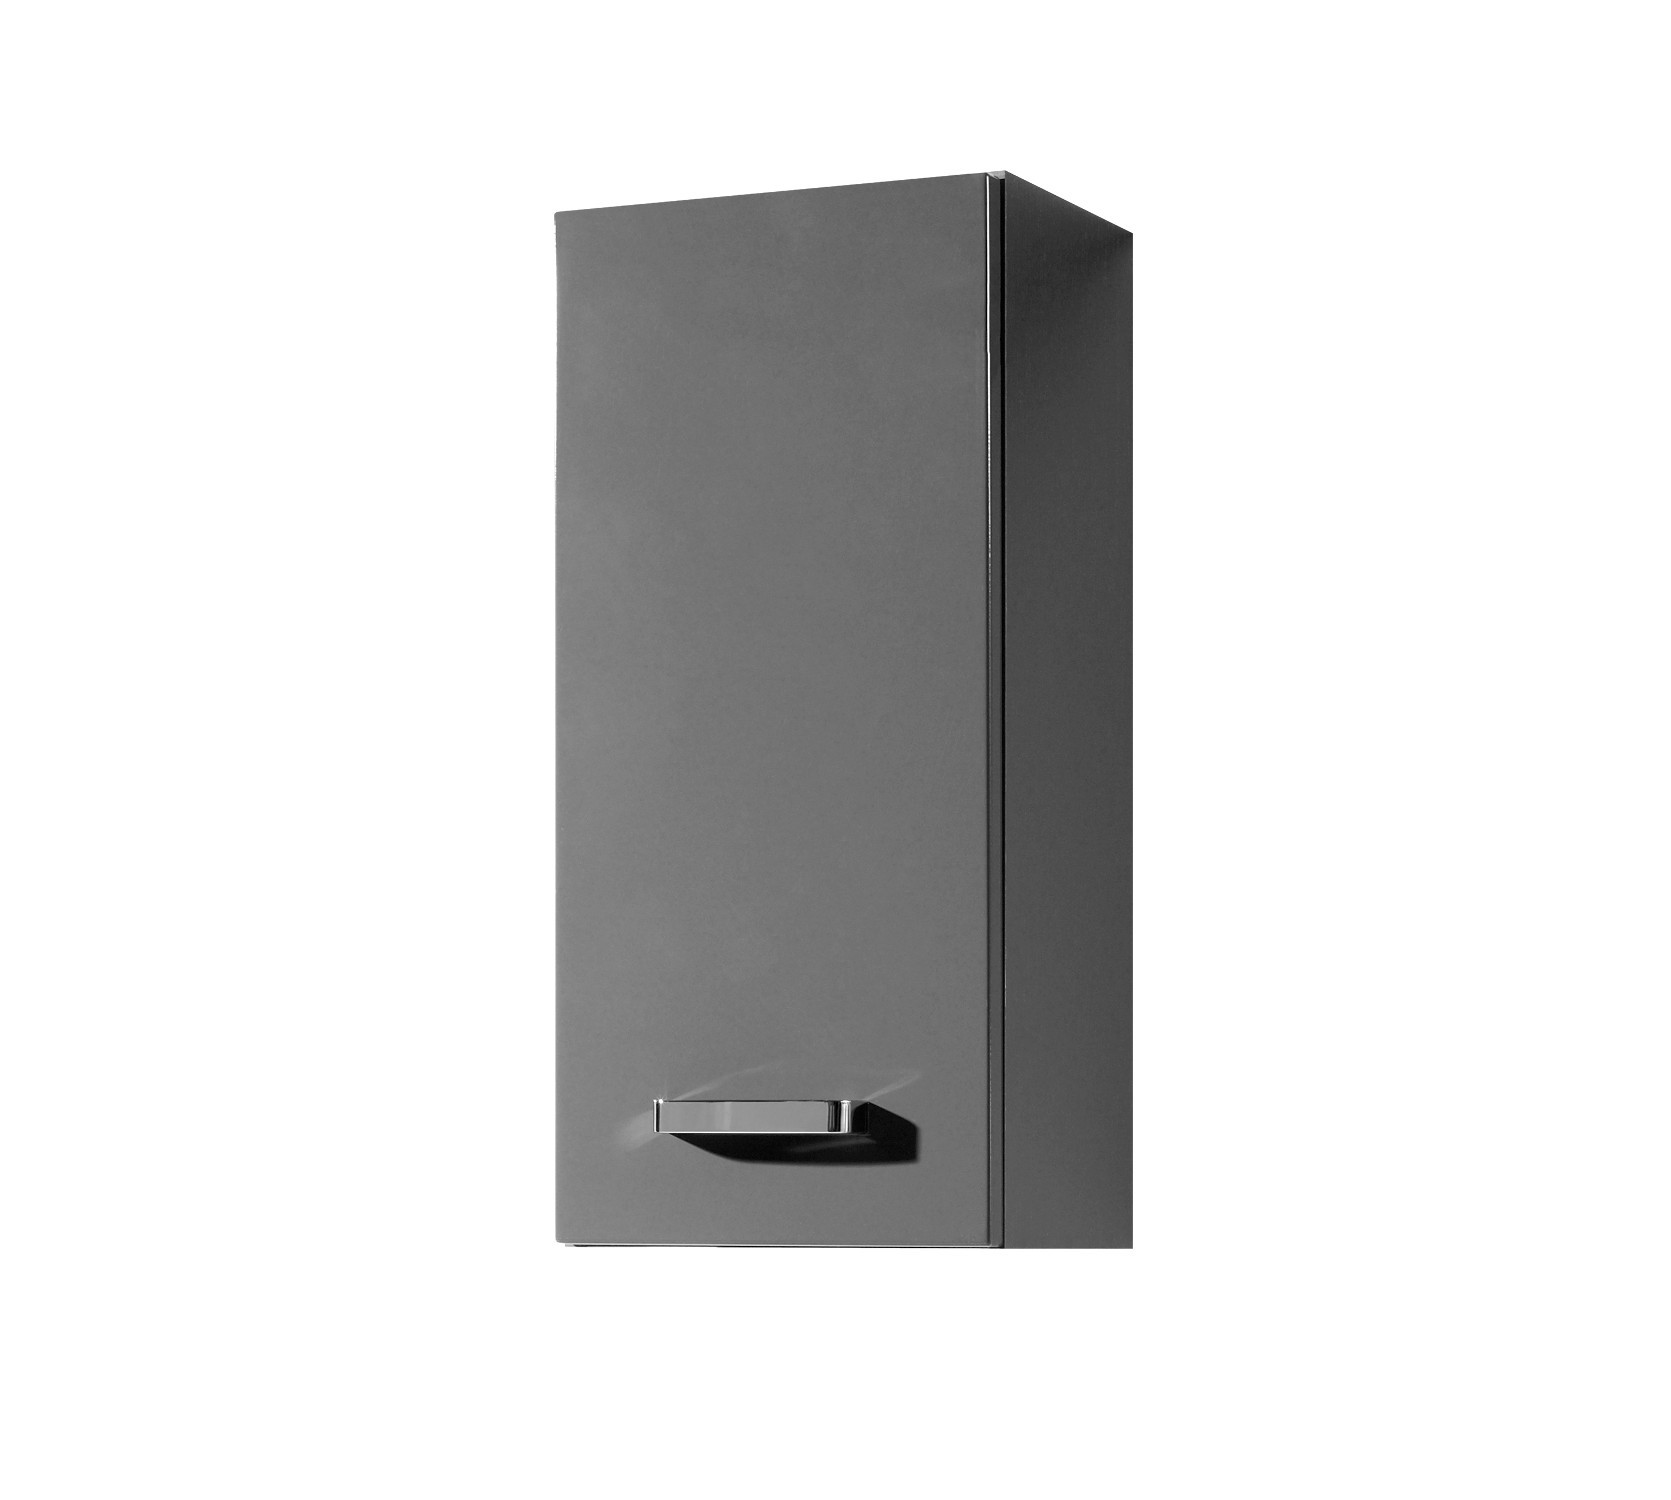 bad h ngeschrank ancona 1 t rig 30 cm breit hochglanz grau bad ancona. Black Bedroom Furniture Sets. Home Design Ideas